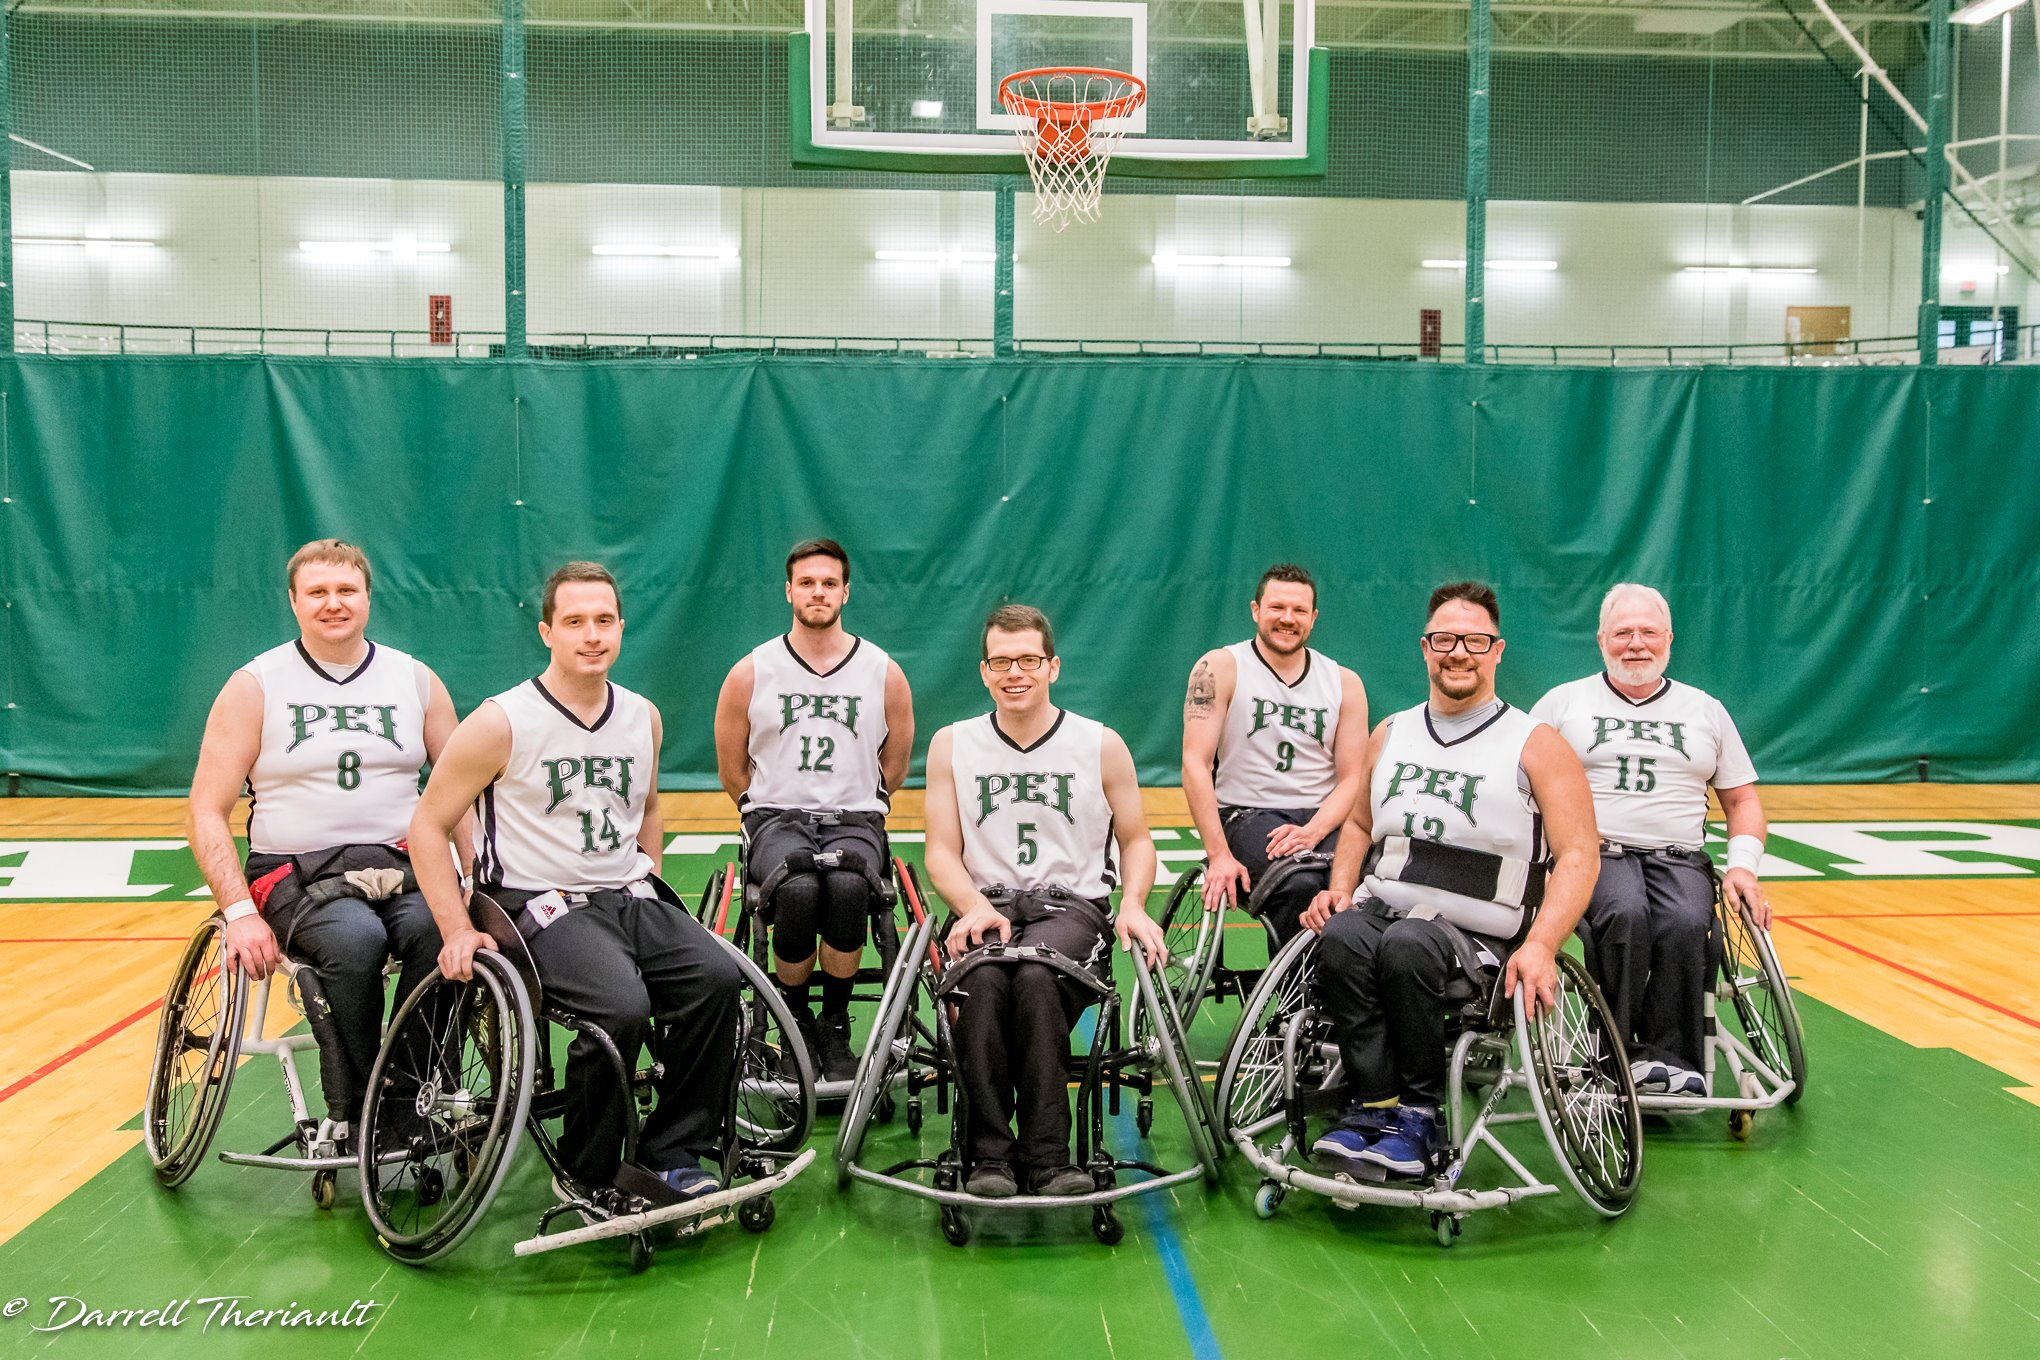 2019 PEI Mustangs Team- 2019 Canadian Wheelchair Baskebtall League Nationals Championships